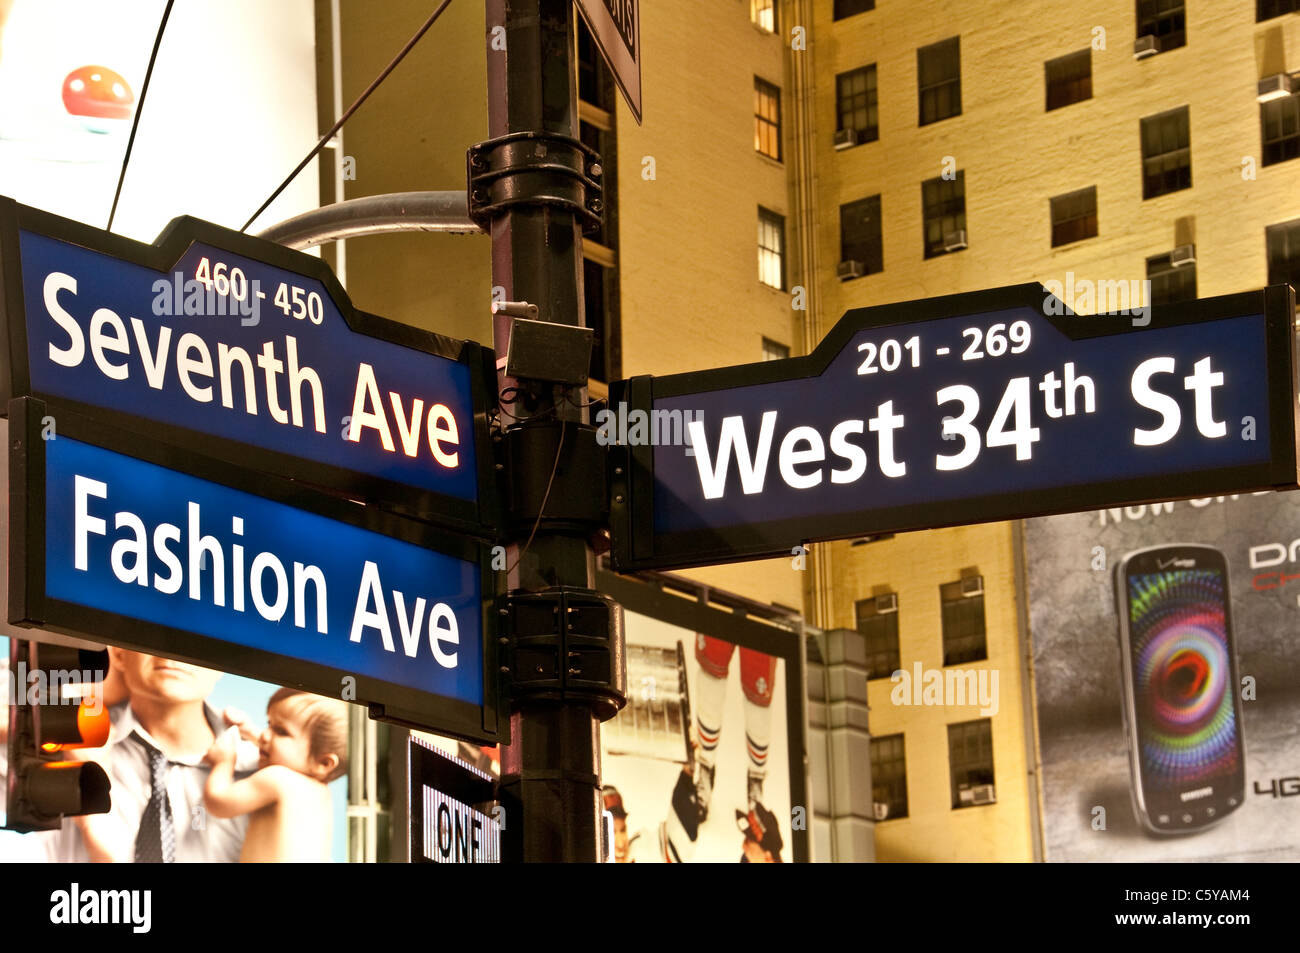 Results for Clothing Stores in New York, NY, East 34th Street. Get free custom quotes, customer reviews, prices, contact details, opening hours from New .